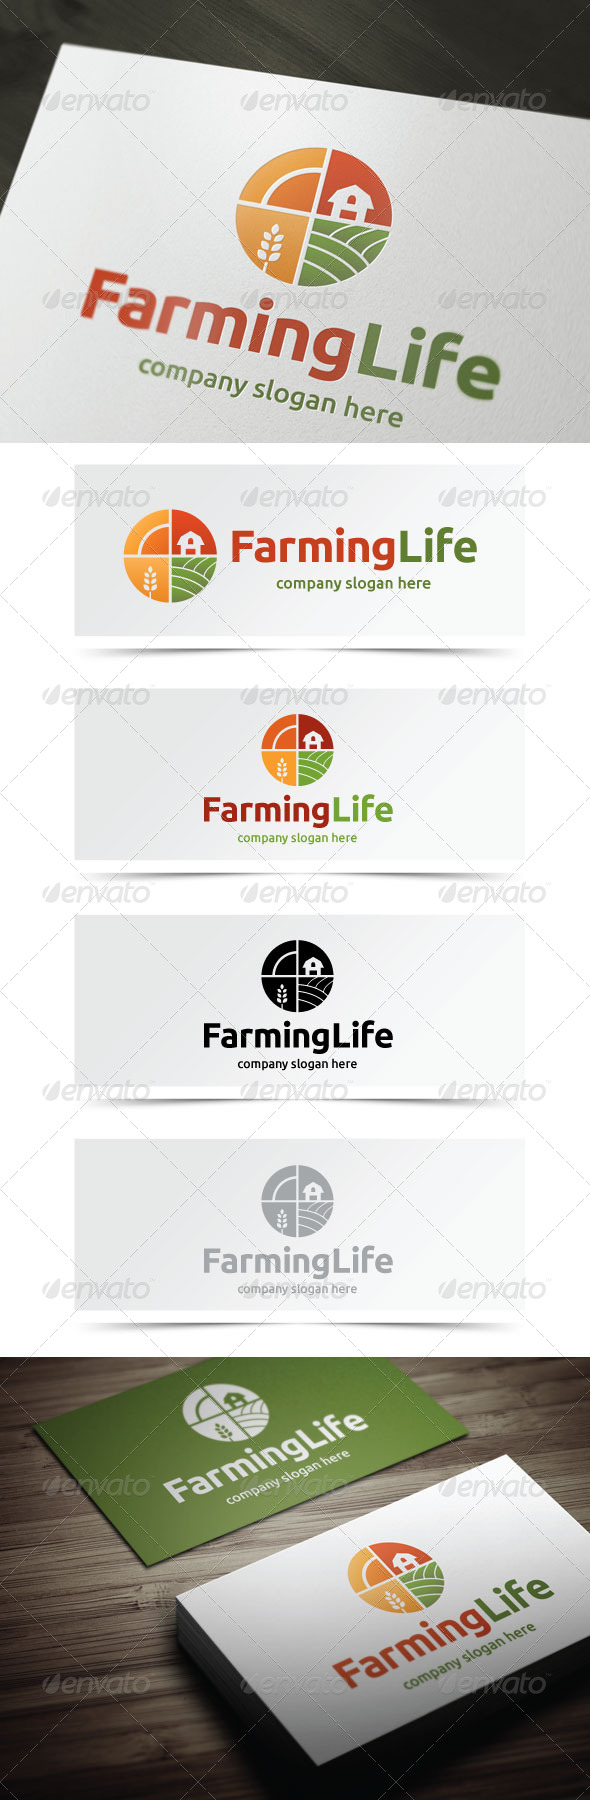 GraphicRiver Farming Life 5351368